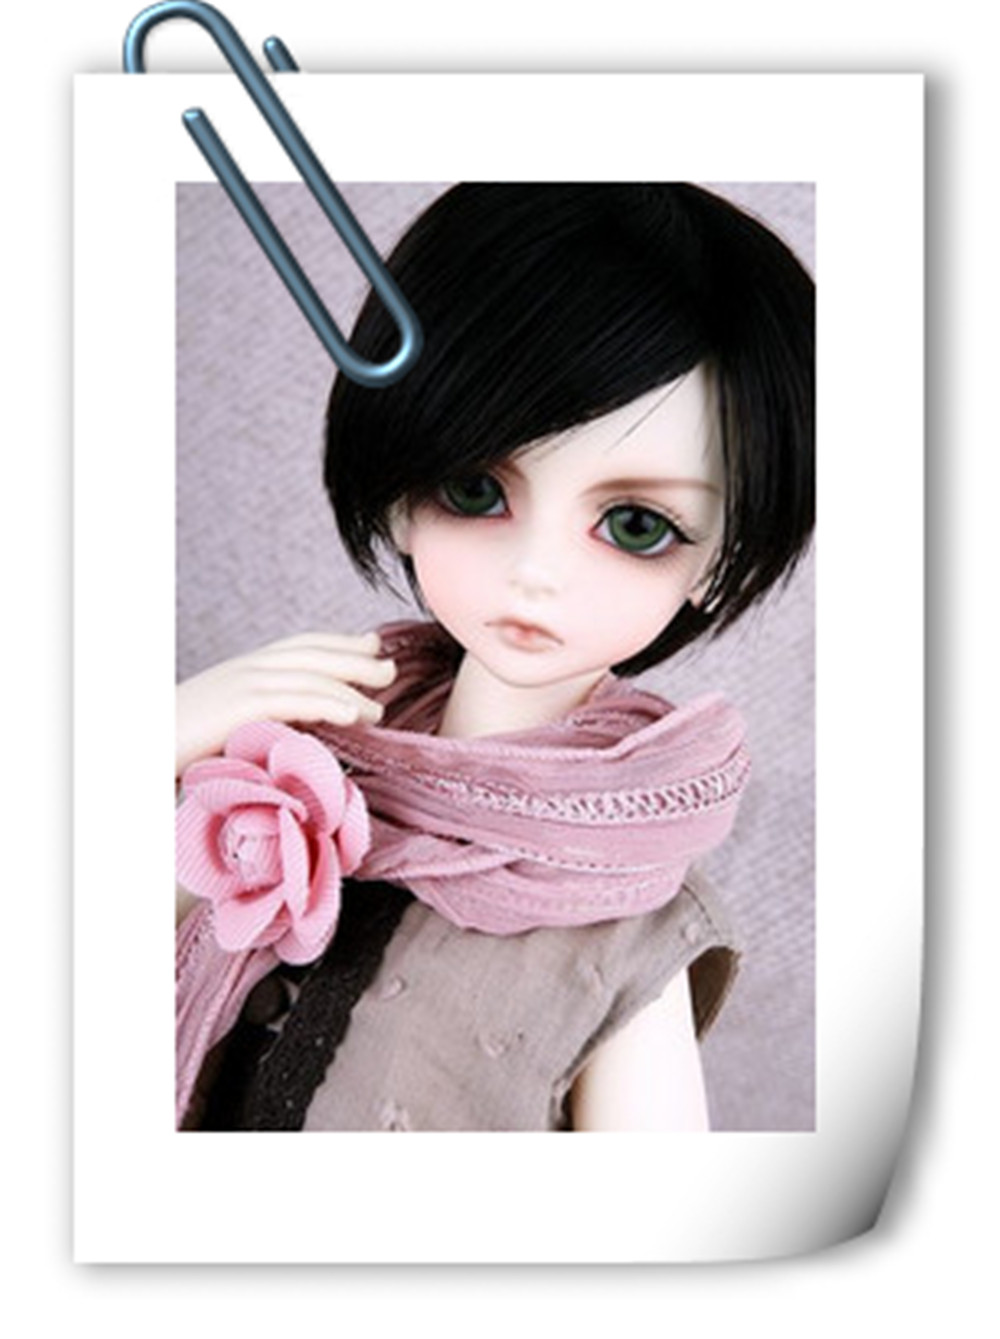 Bjd/sd doll Boy 1/4- male doll joint doll free eyes can choose color stenzhorn bjd doll 1 4doll unoa lusis joint doll free eye